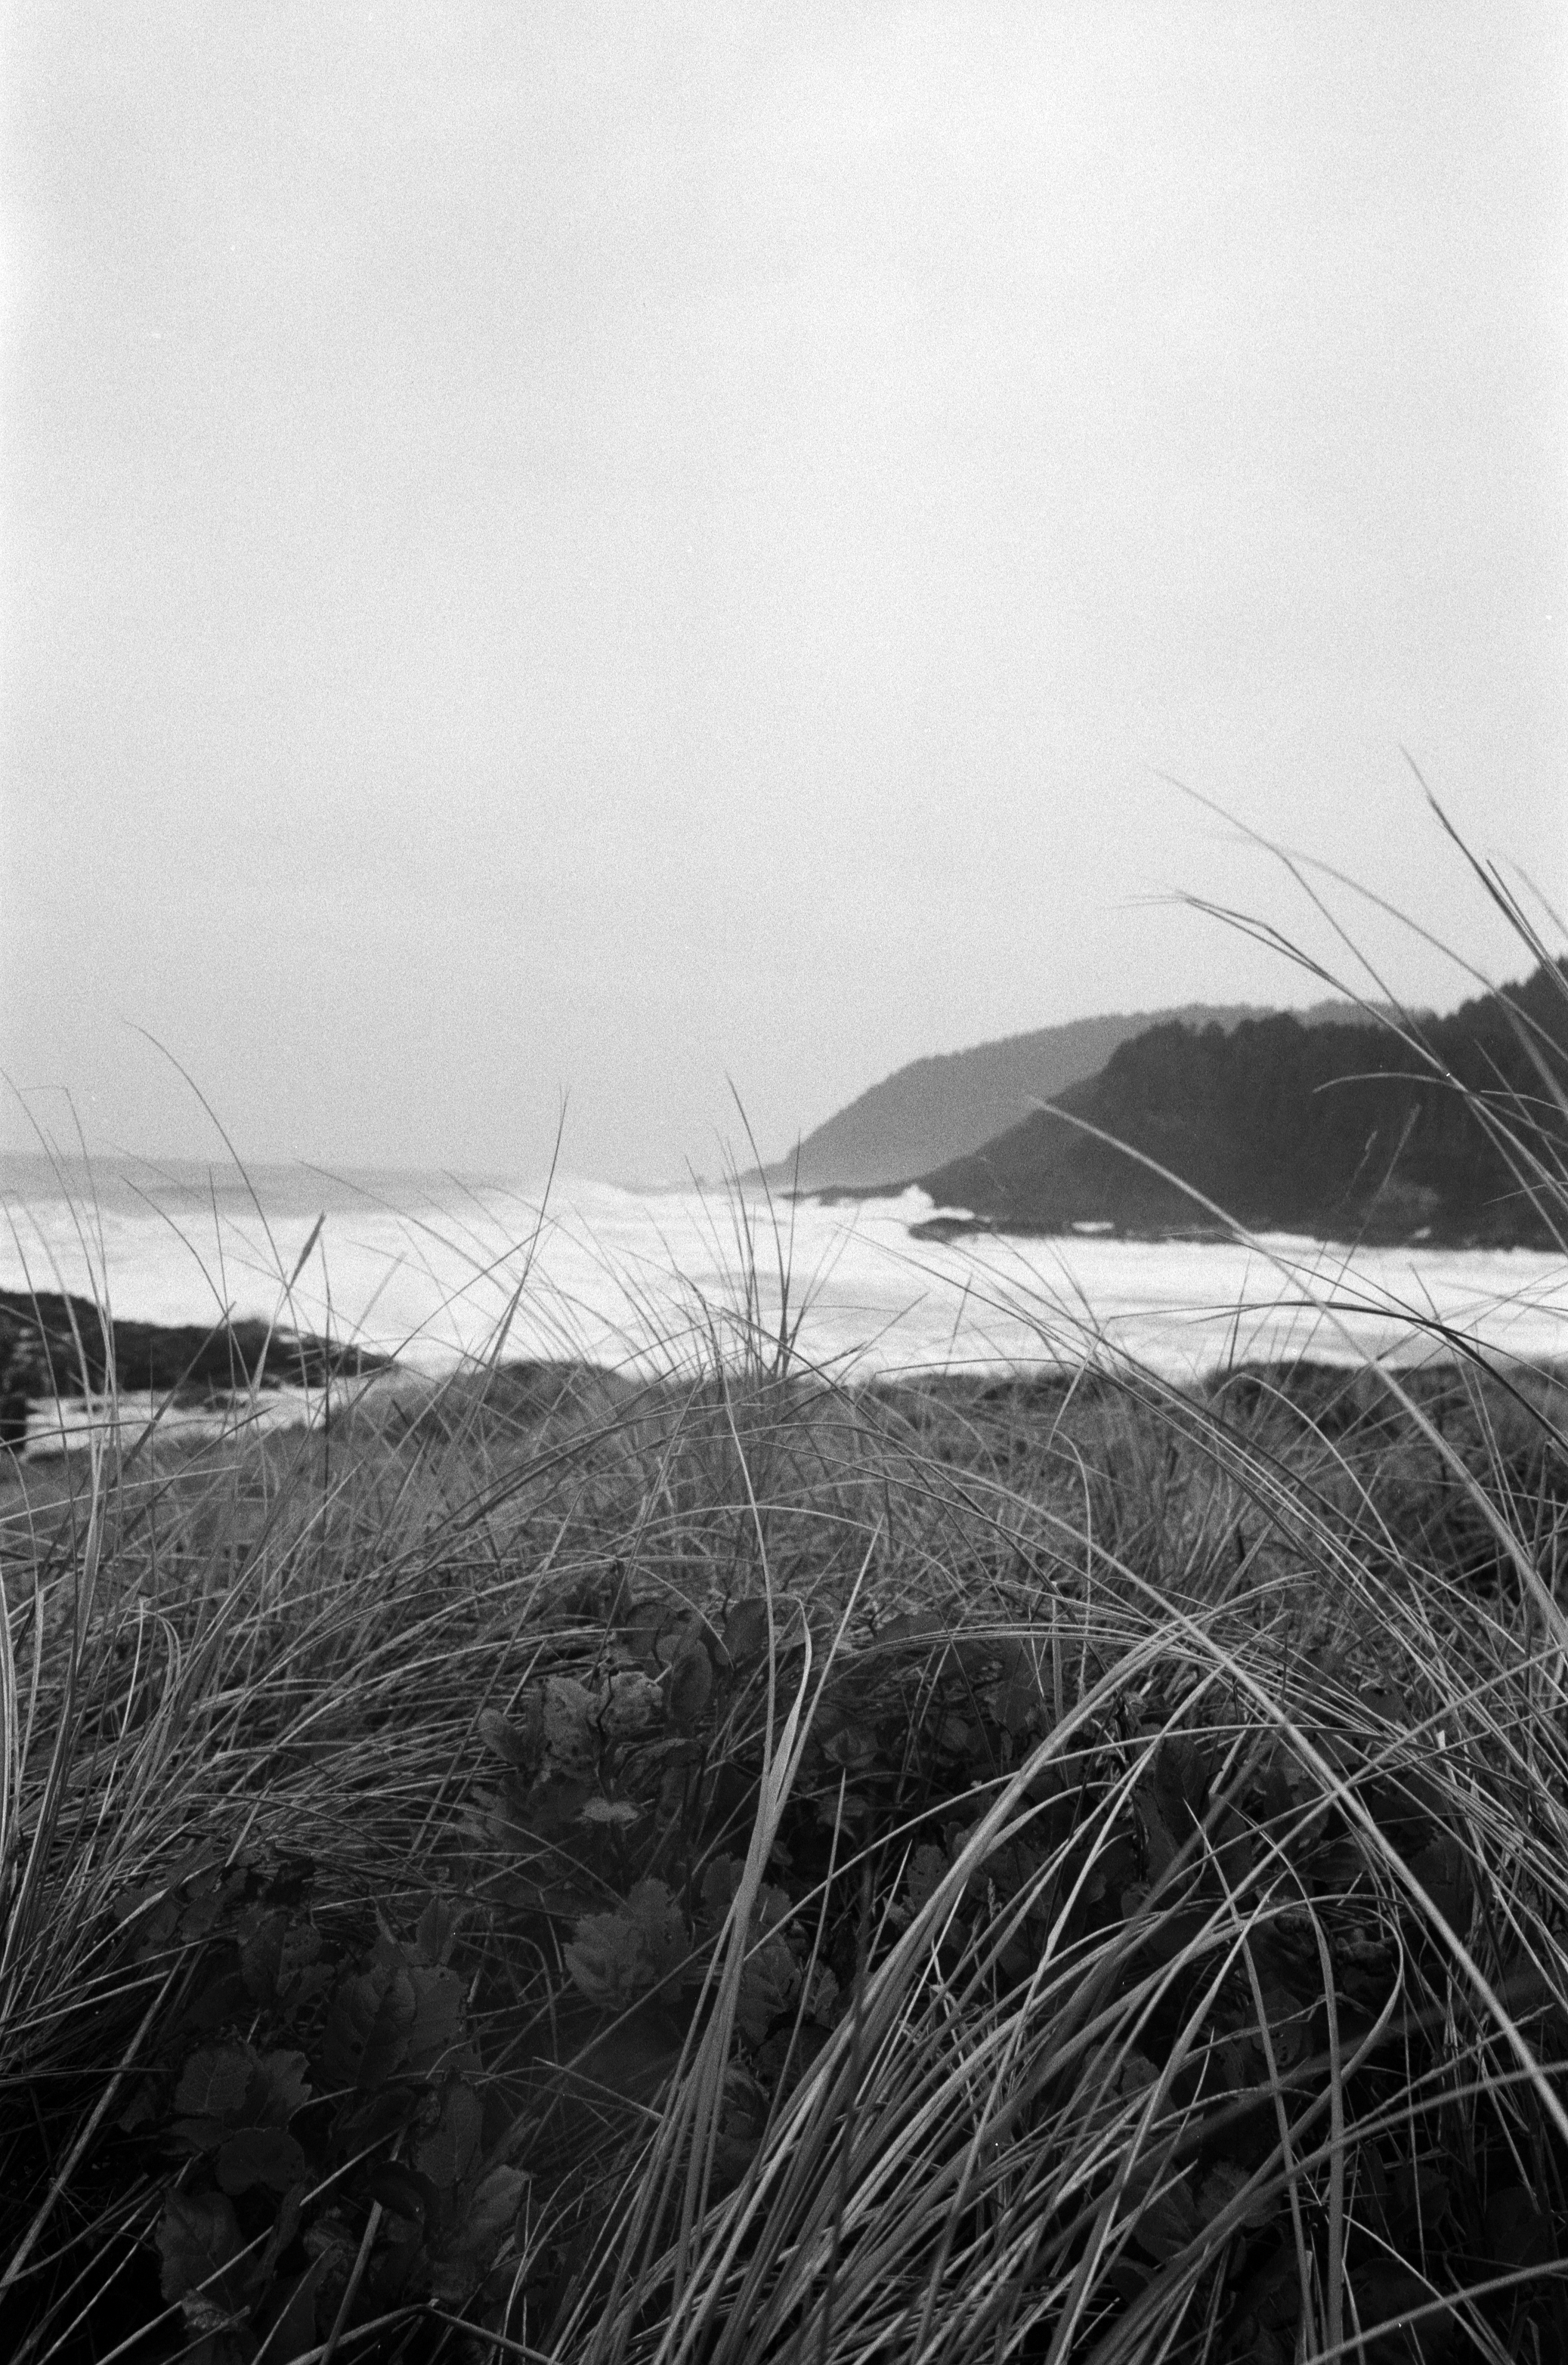 Ilford_Roll01_PNW_2019_002.jpg